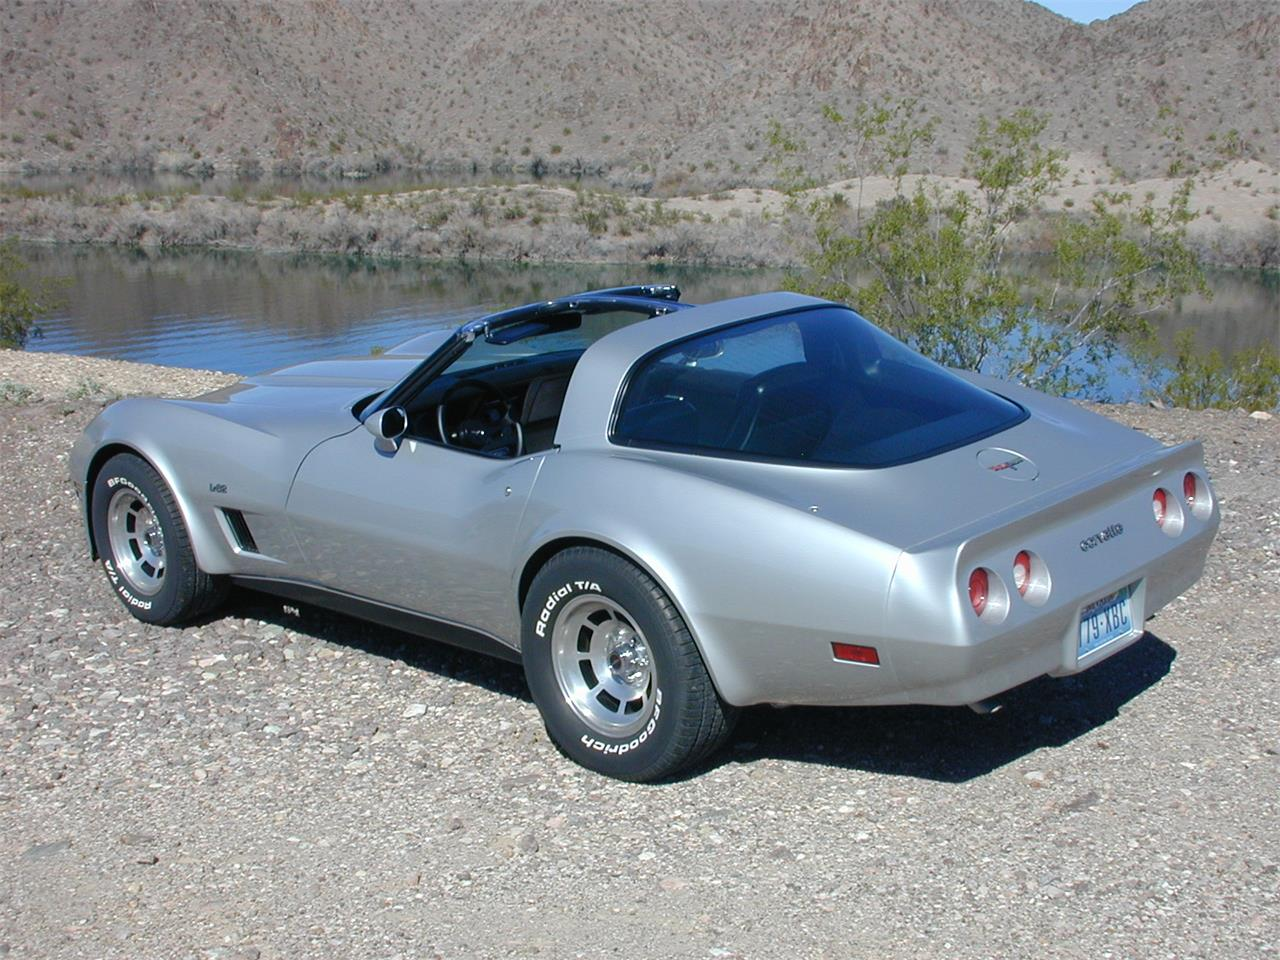 Large Picture of '80 Corvette located in Laughlin Nevada - $18,500.00 - DR92